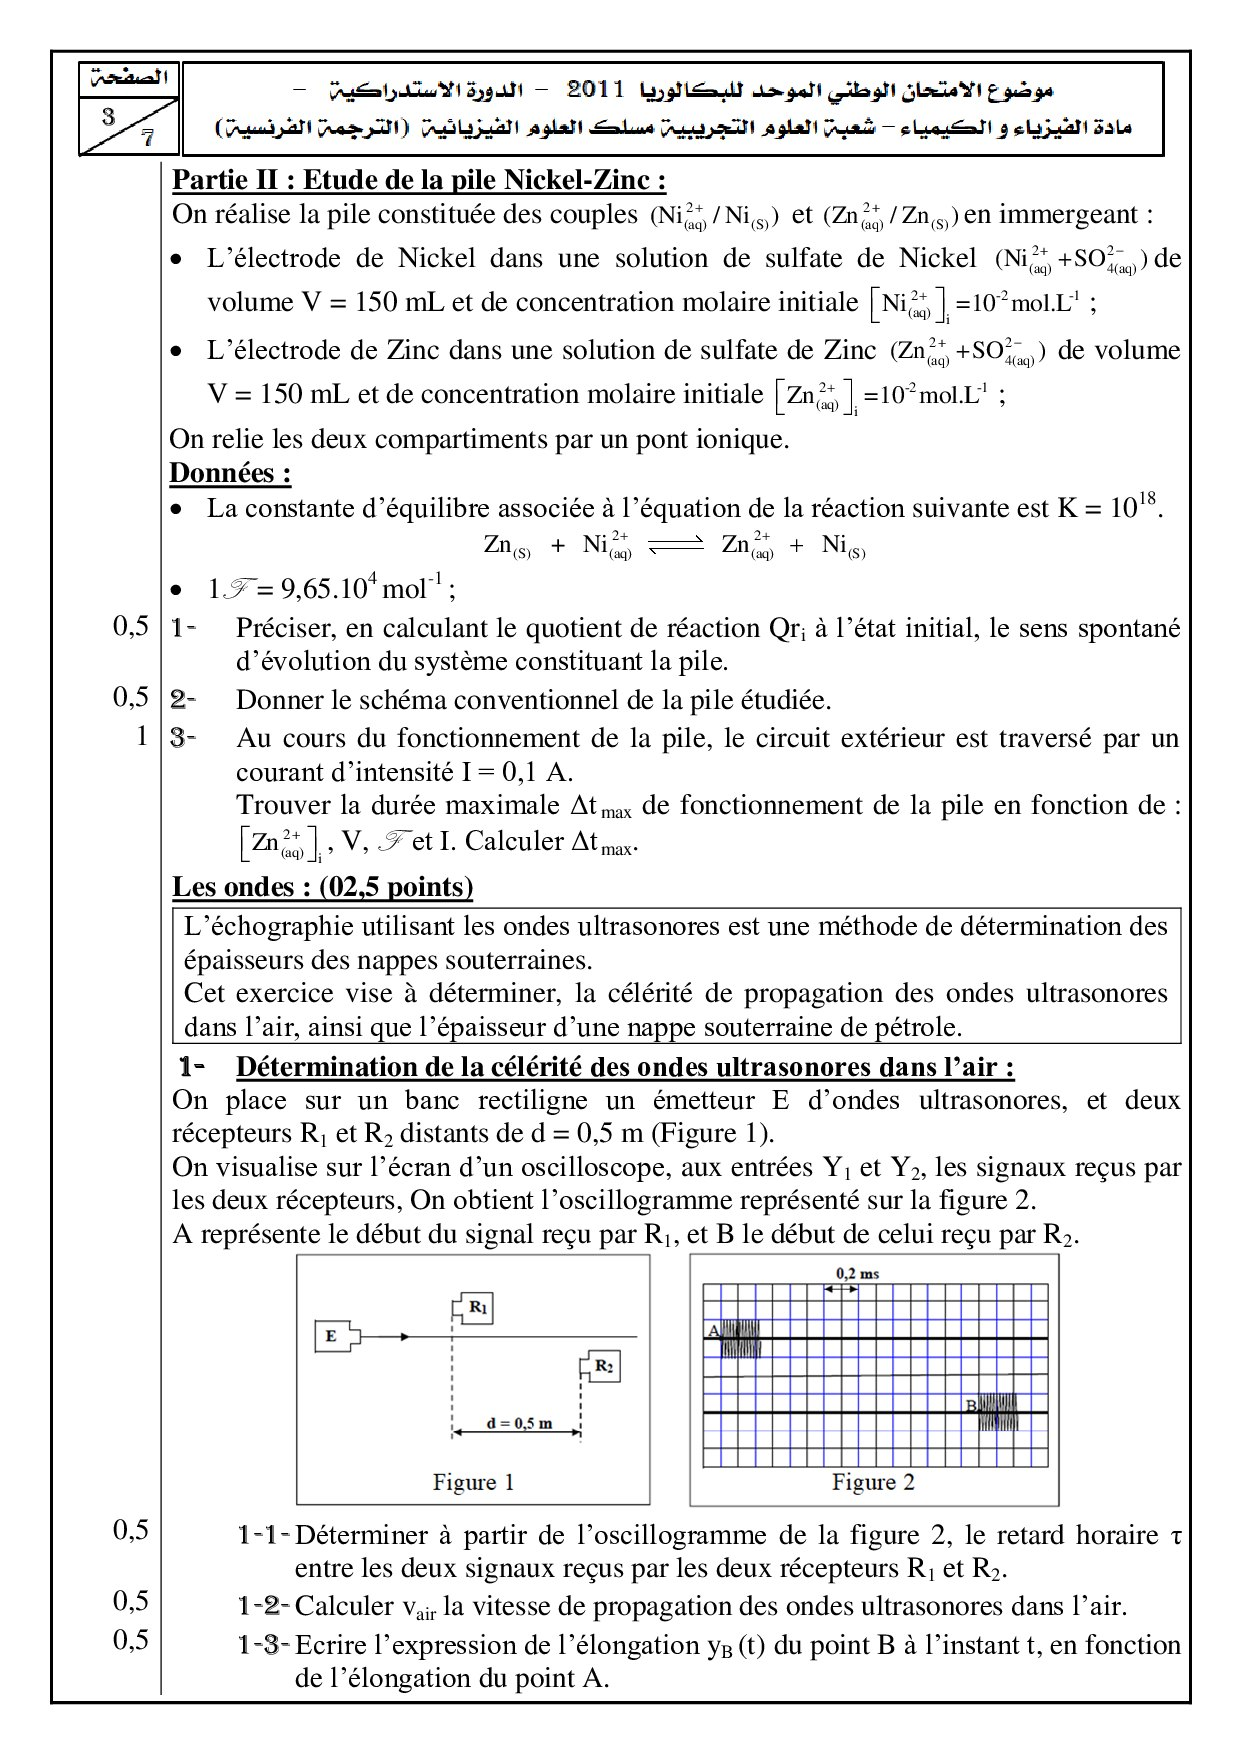 Examen National Physique-Chimie SPC 2011 Rattrapage - Sujet3.jpg